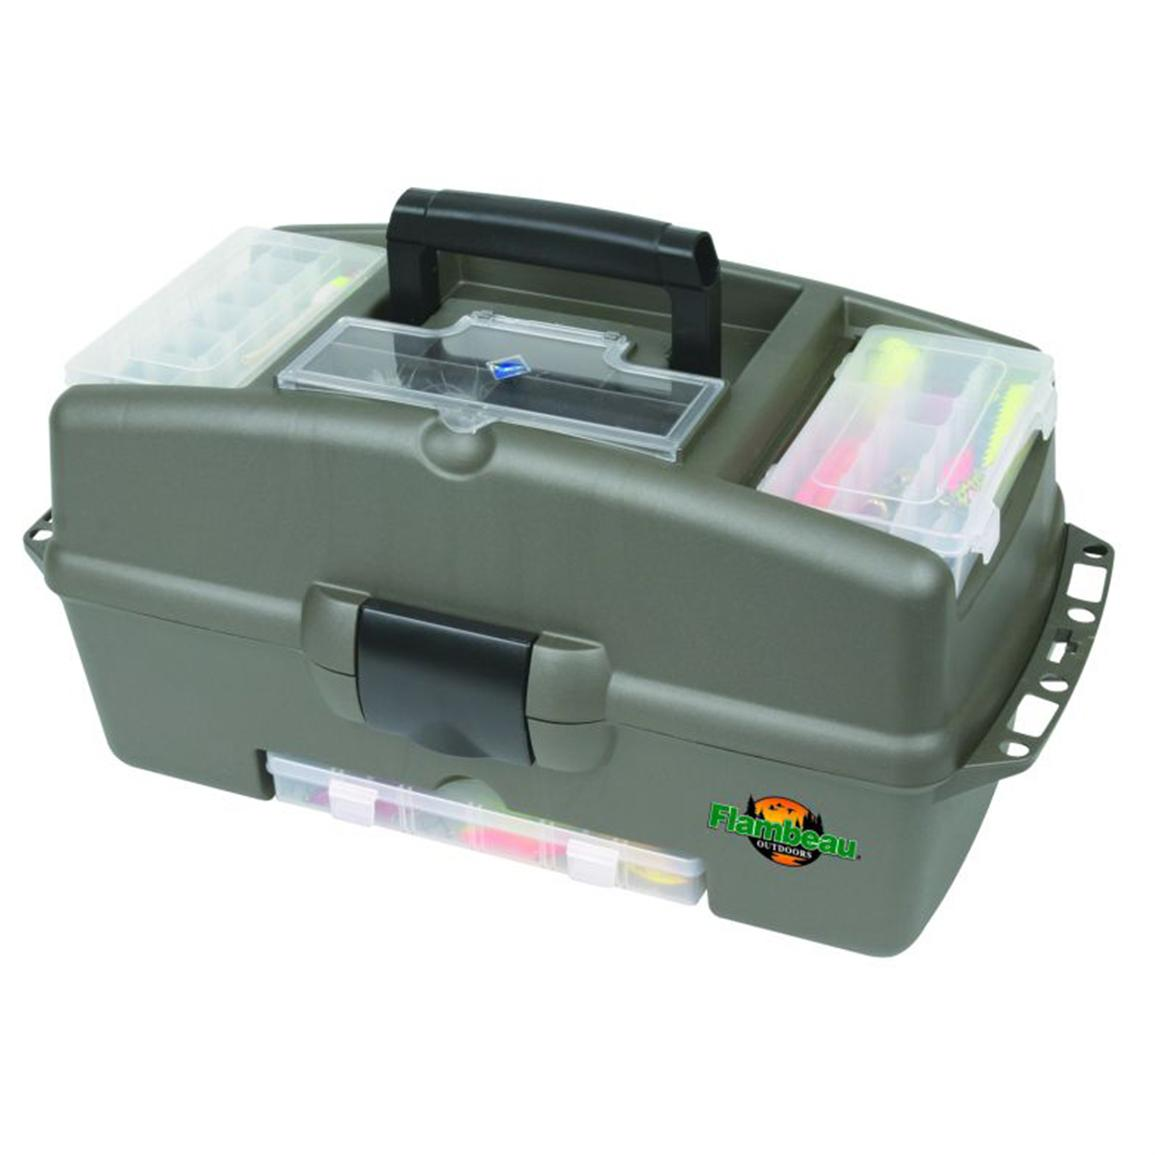 Flambeau Outdoors® 2-Tray Kwikdraw™ Tackle Box